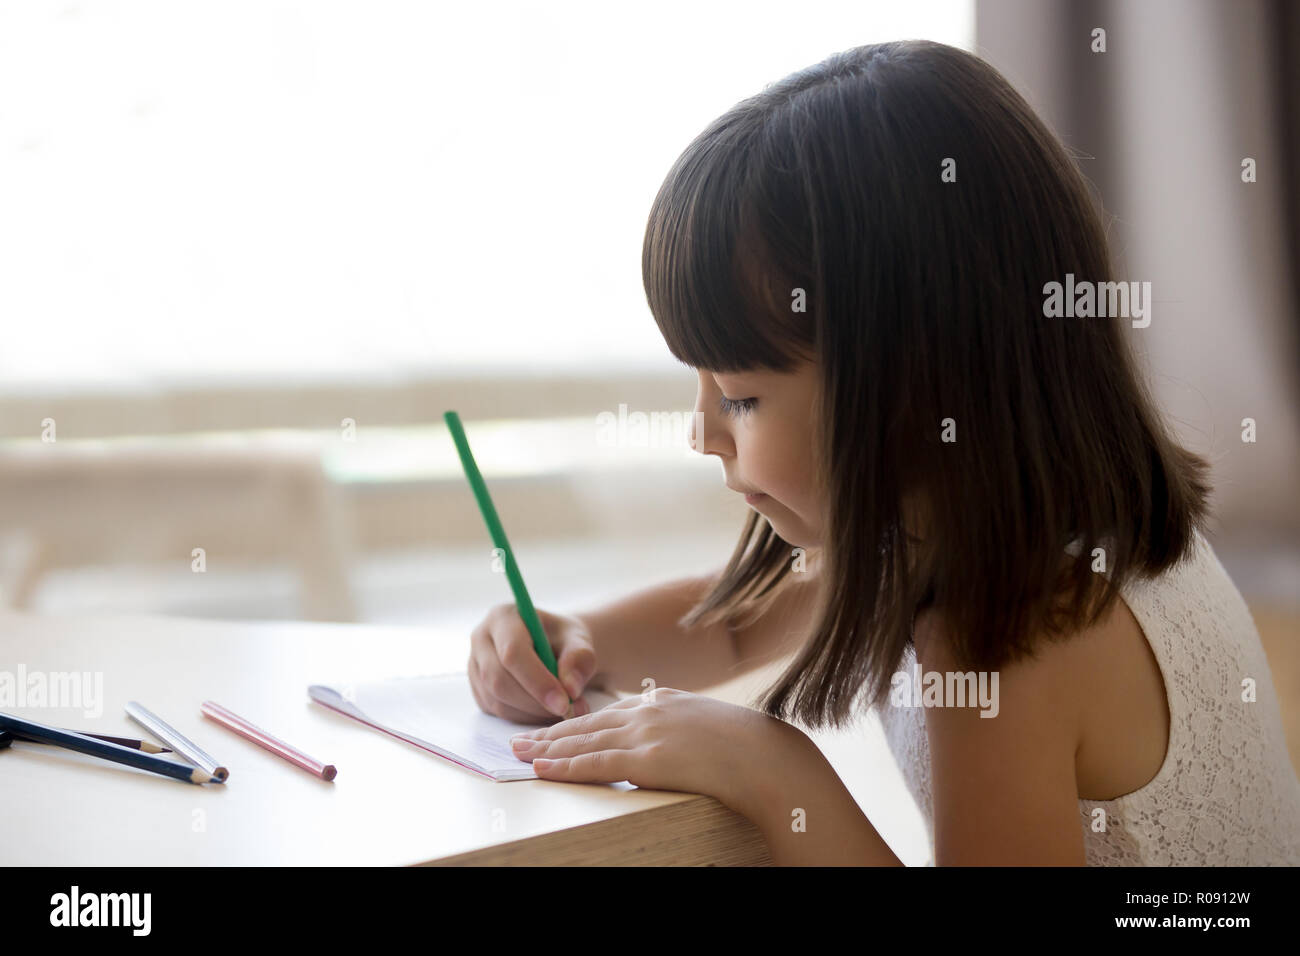 Little girl draws on paper sitting at table - Stock Image